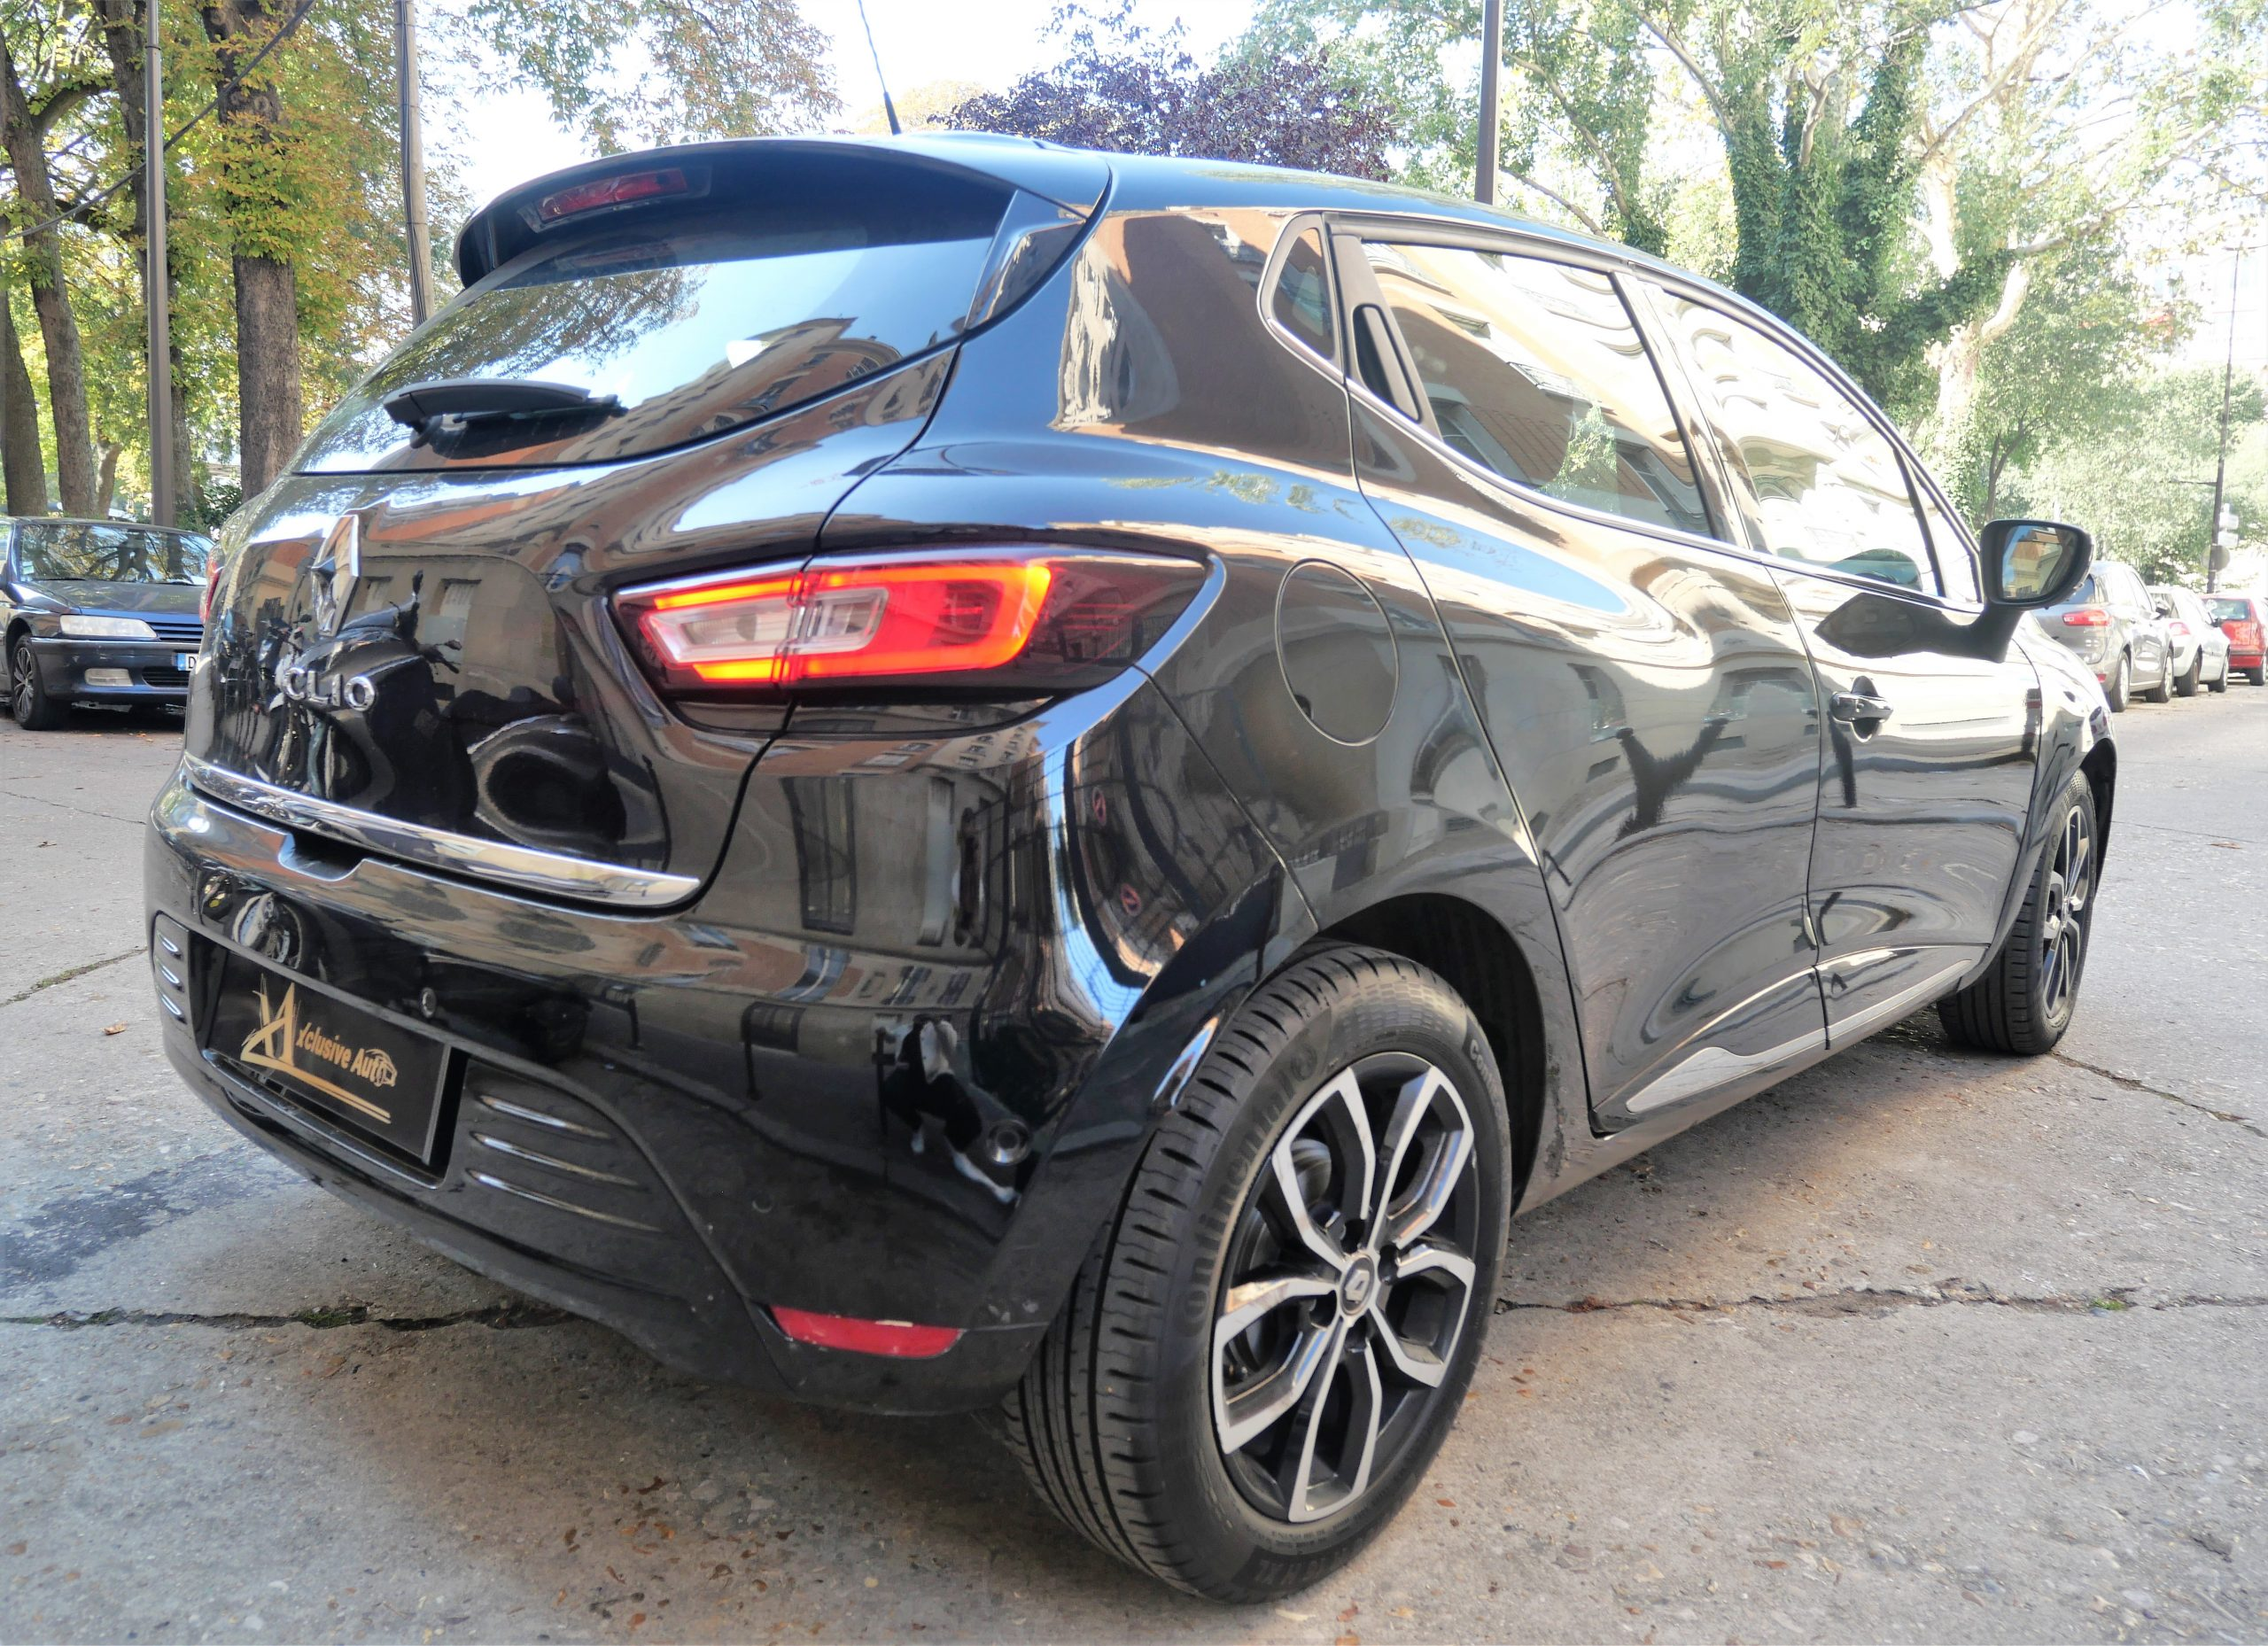 RENAULT Clio IV INTENS Phase 2 0.9 TCe 90 ch 4